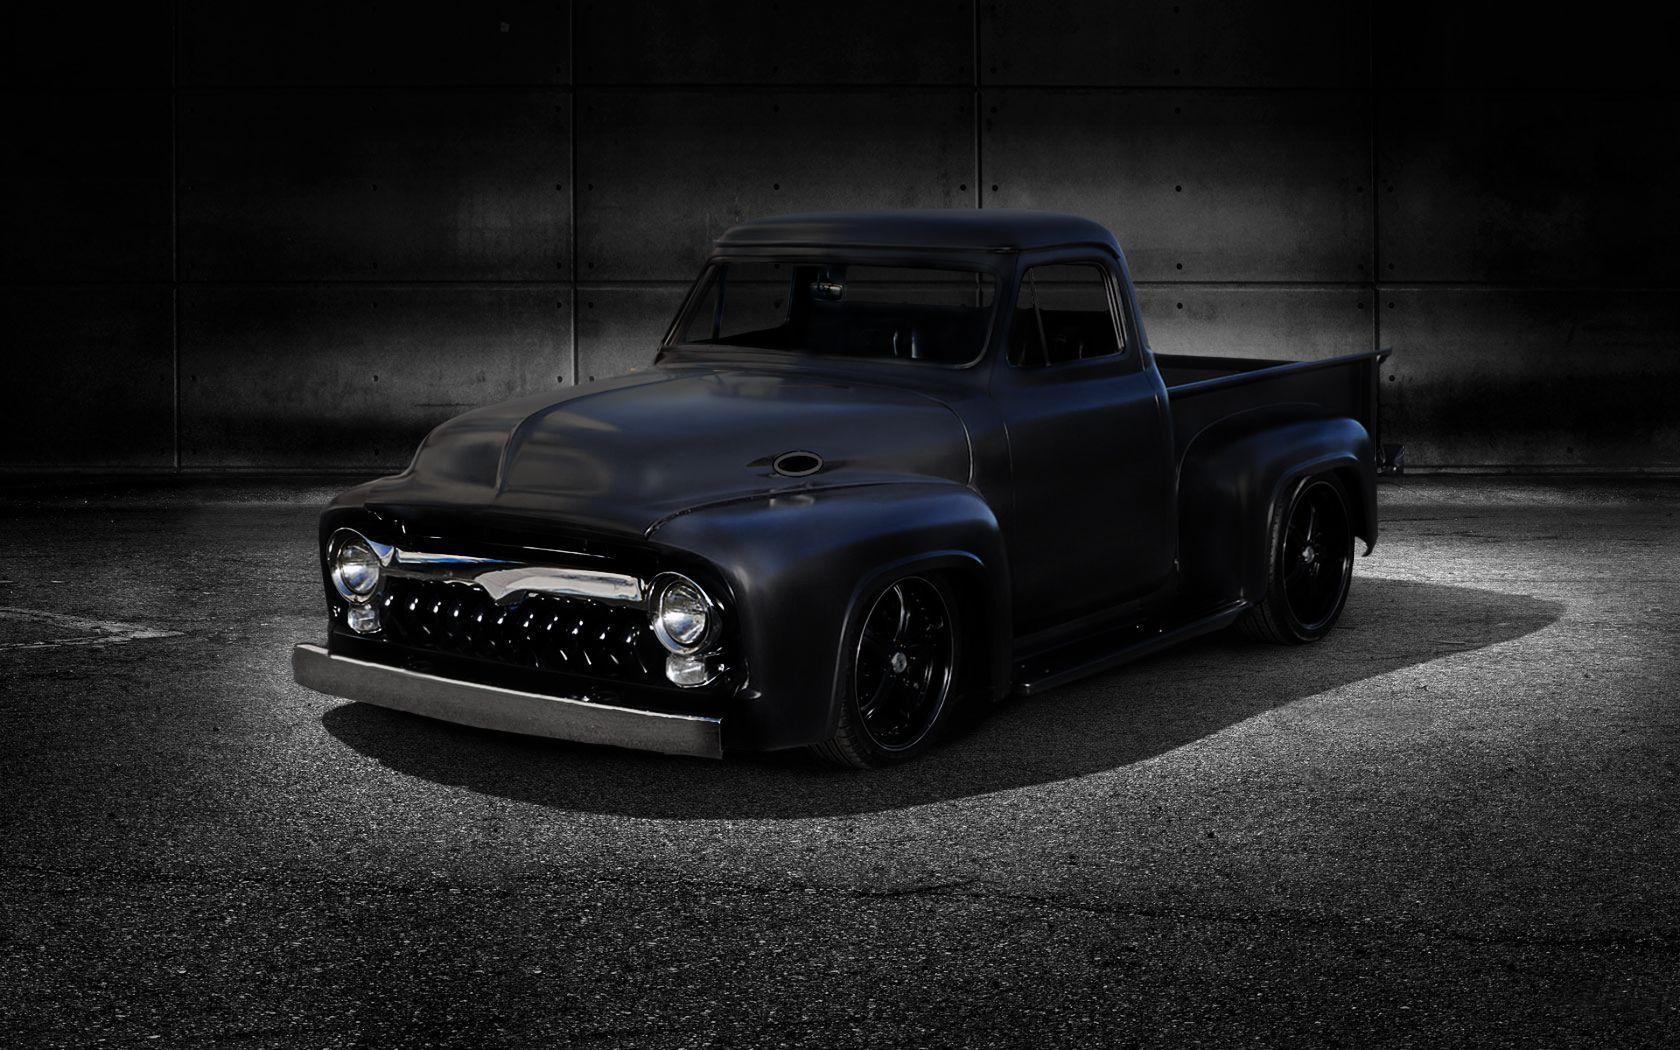 Ford F100 Wallpapers - Wallpaper Cave